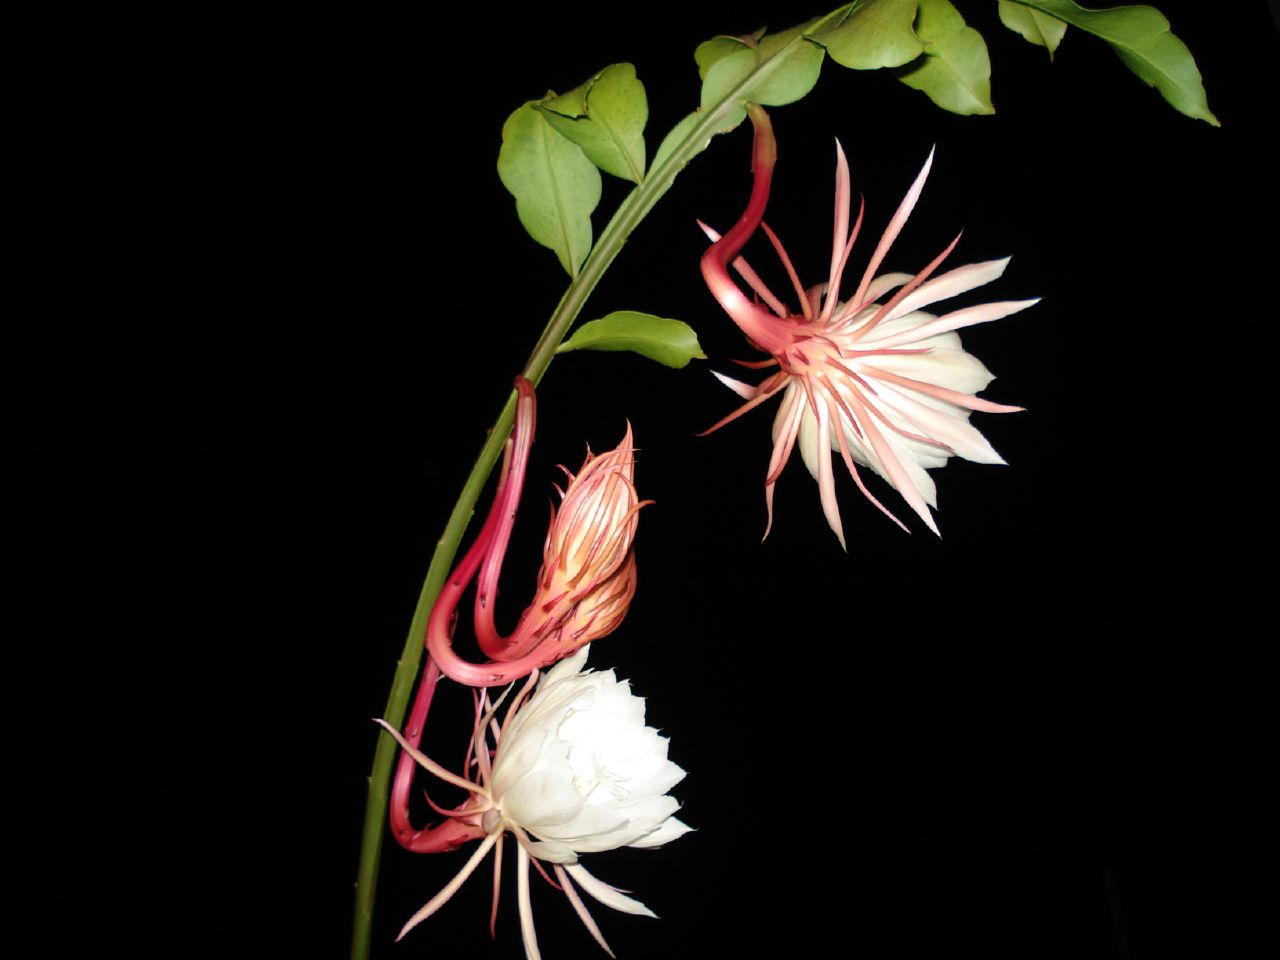 https://i1.wp.com/upload.wikimedia.org/wikipedia/commons/7/7a/Epiphyllum_oxypetalum200669888.jpg